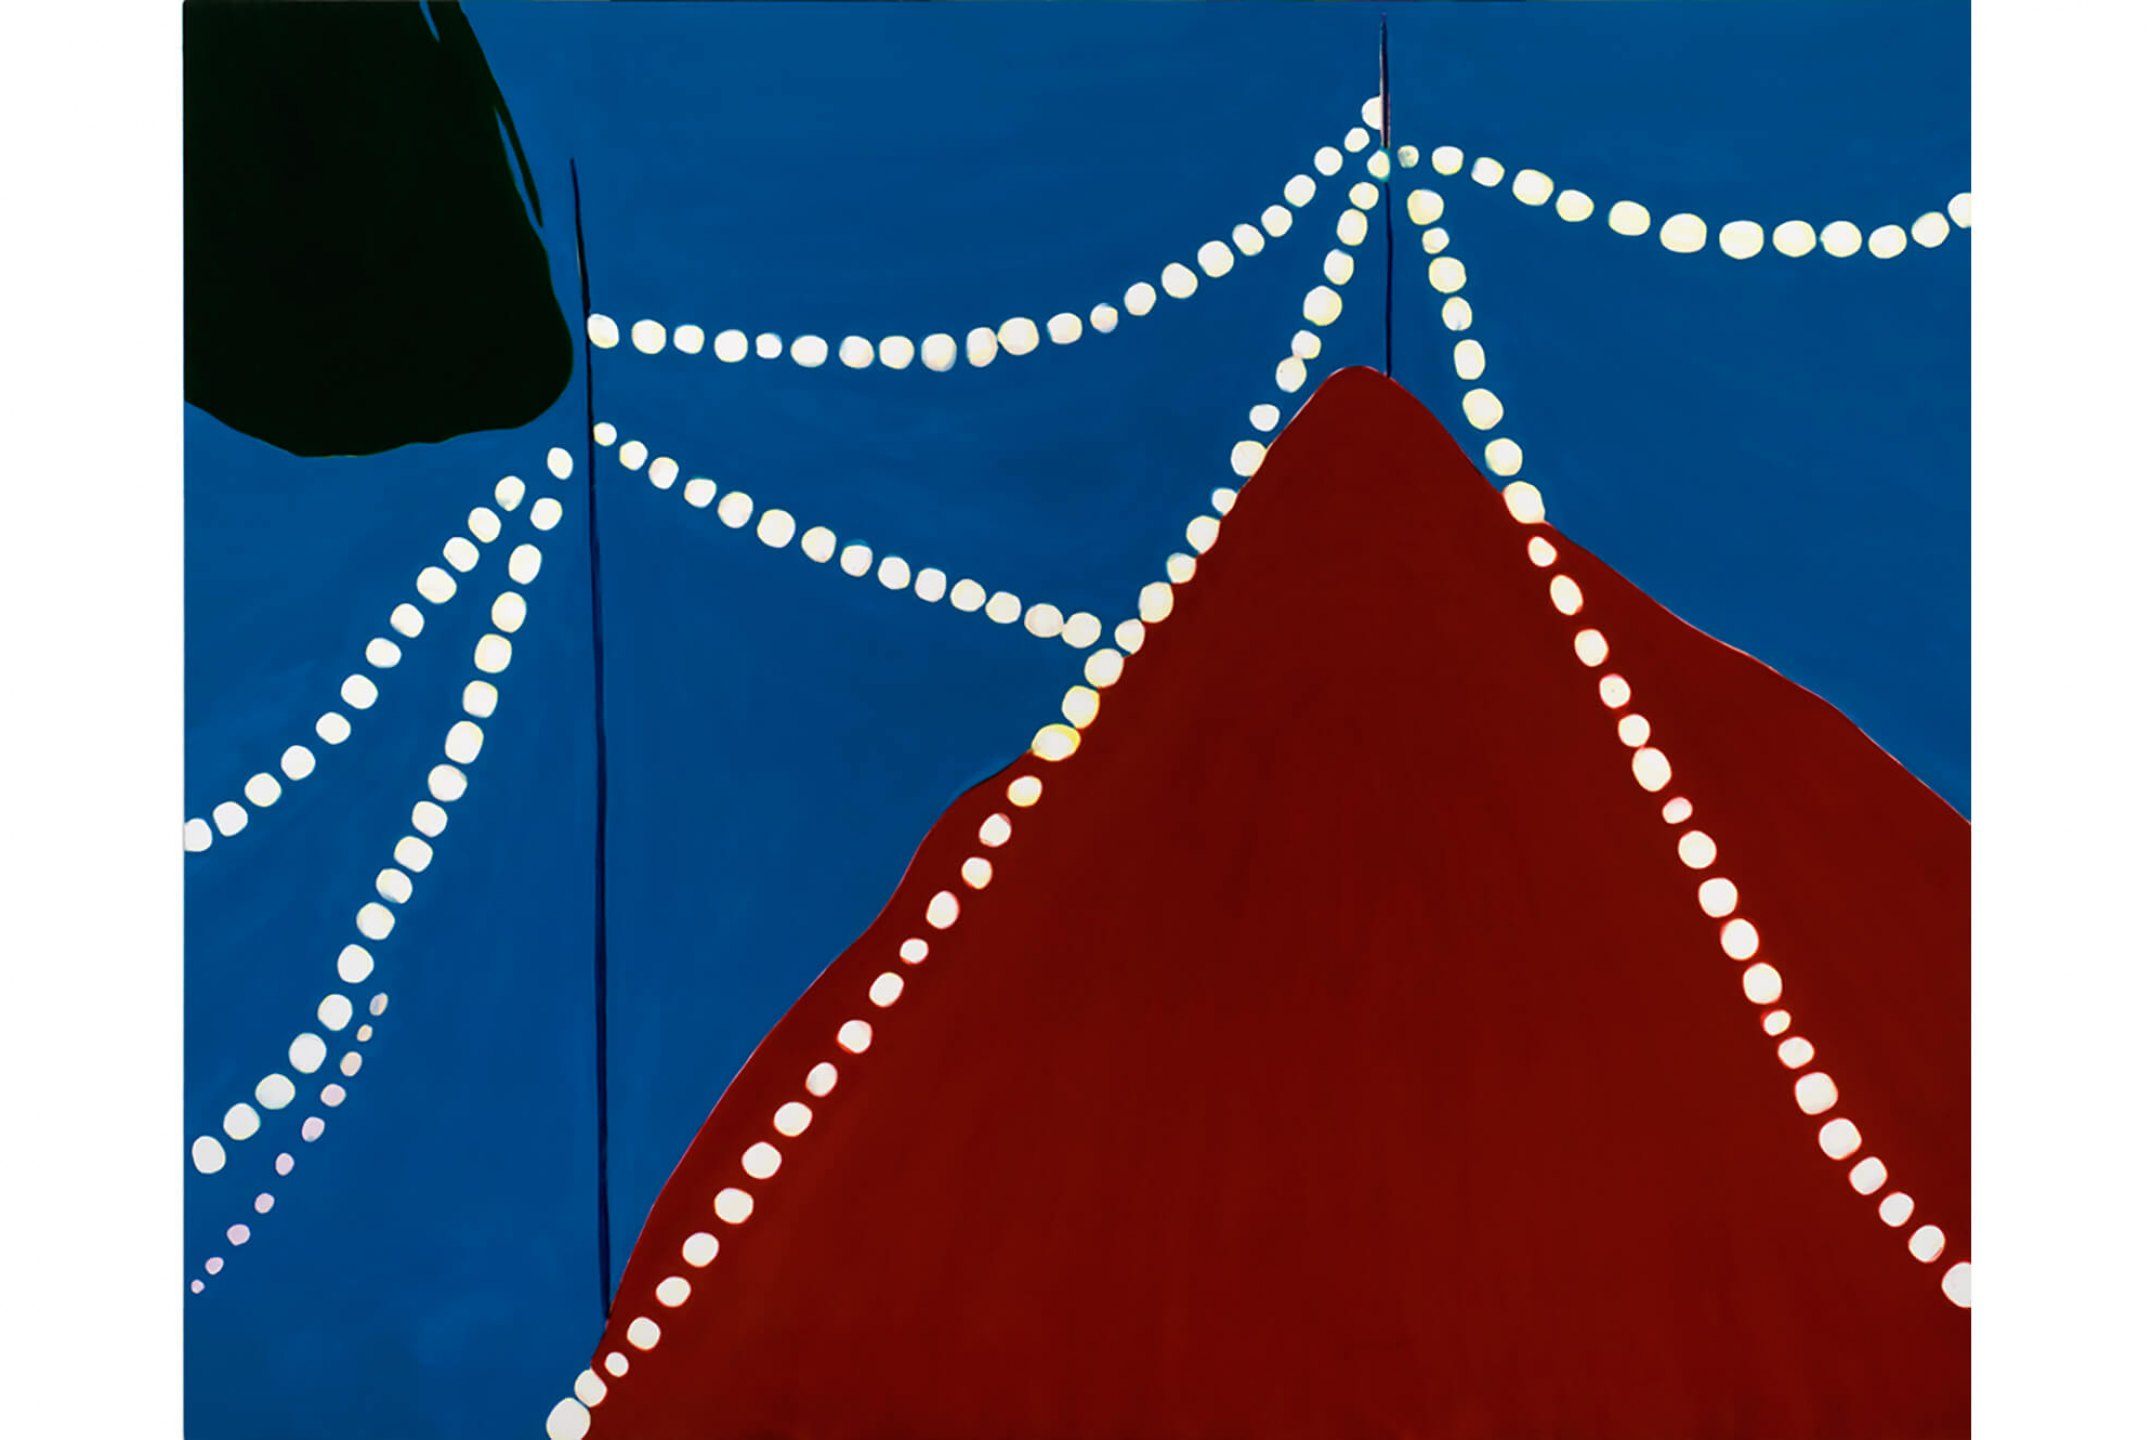 Patricia Leite, <em>Untitled (Lamp Bulbs I)</em>, 2009, oil on wood, 180 × 200 cm - Mendes Wood DM